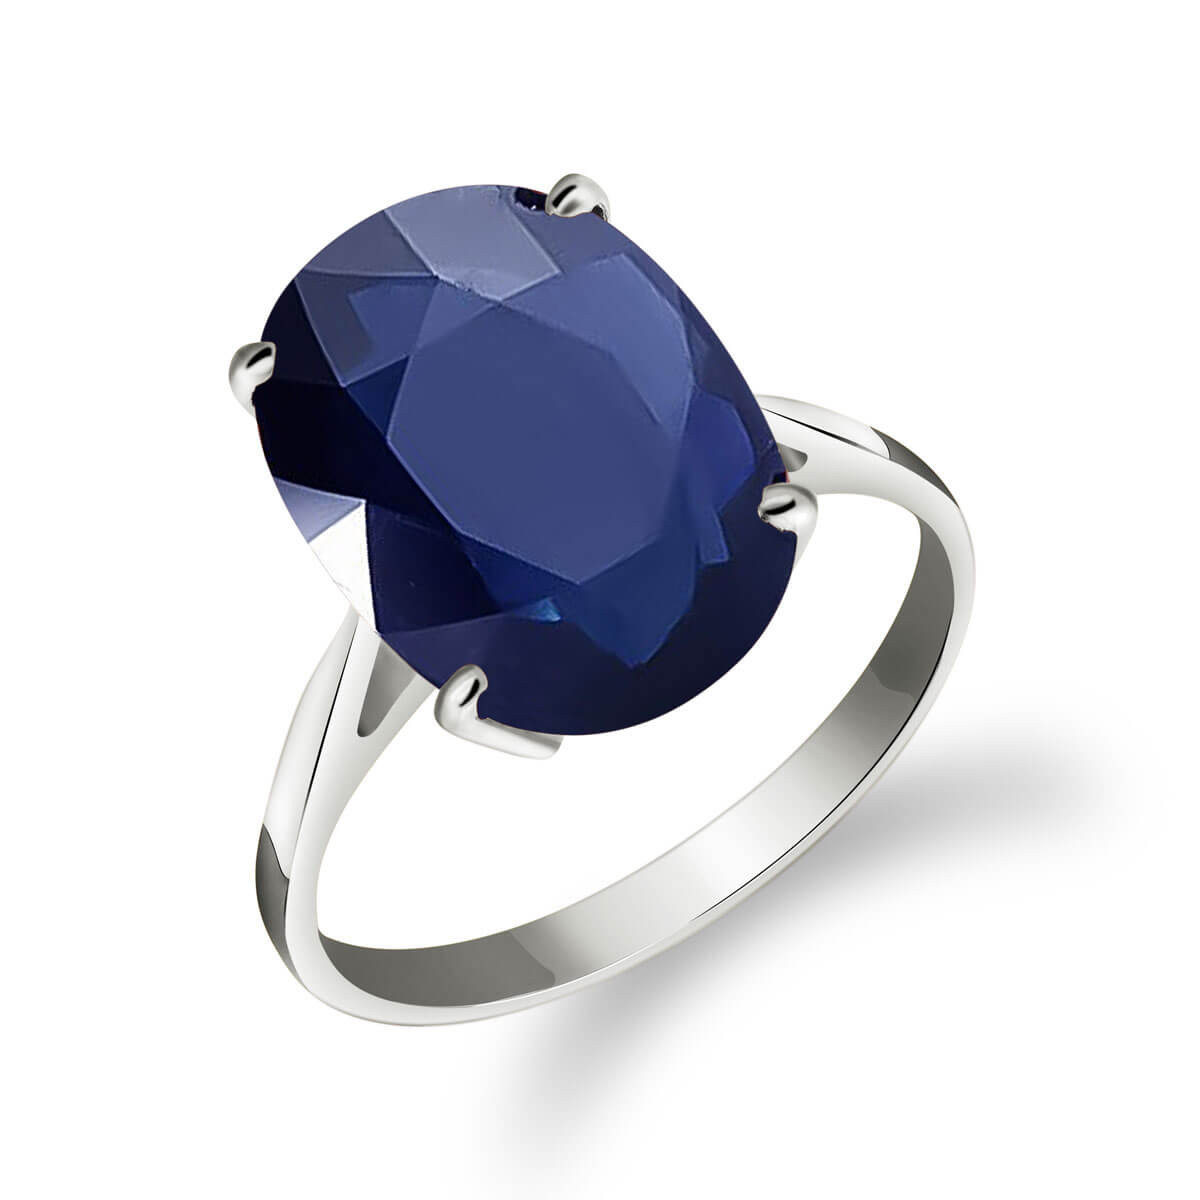 Sapphire Valiant Ring 8.5 ct in Sterling Silver